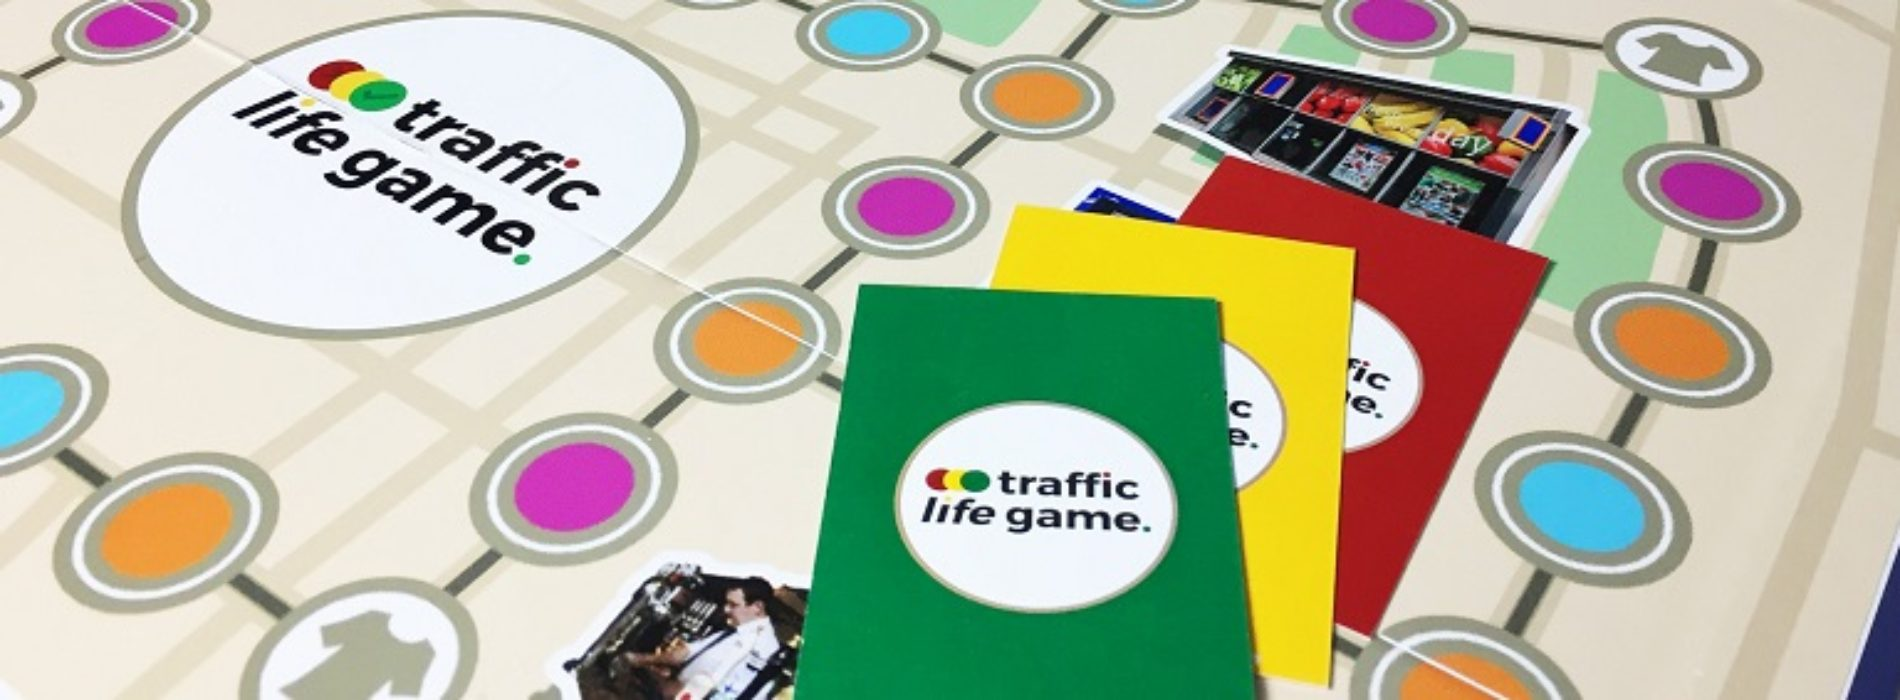 The Traffic Life Game: making talking about tricky situations easier